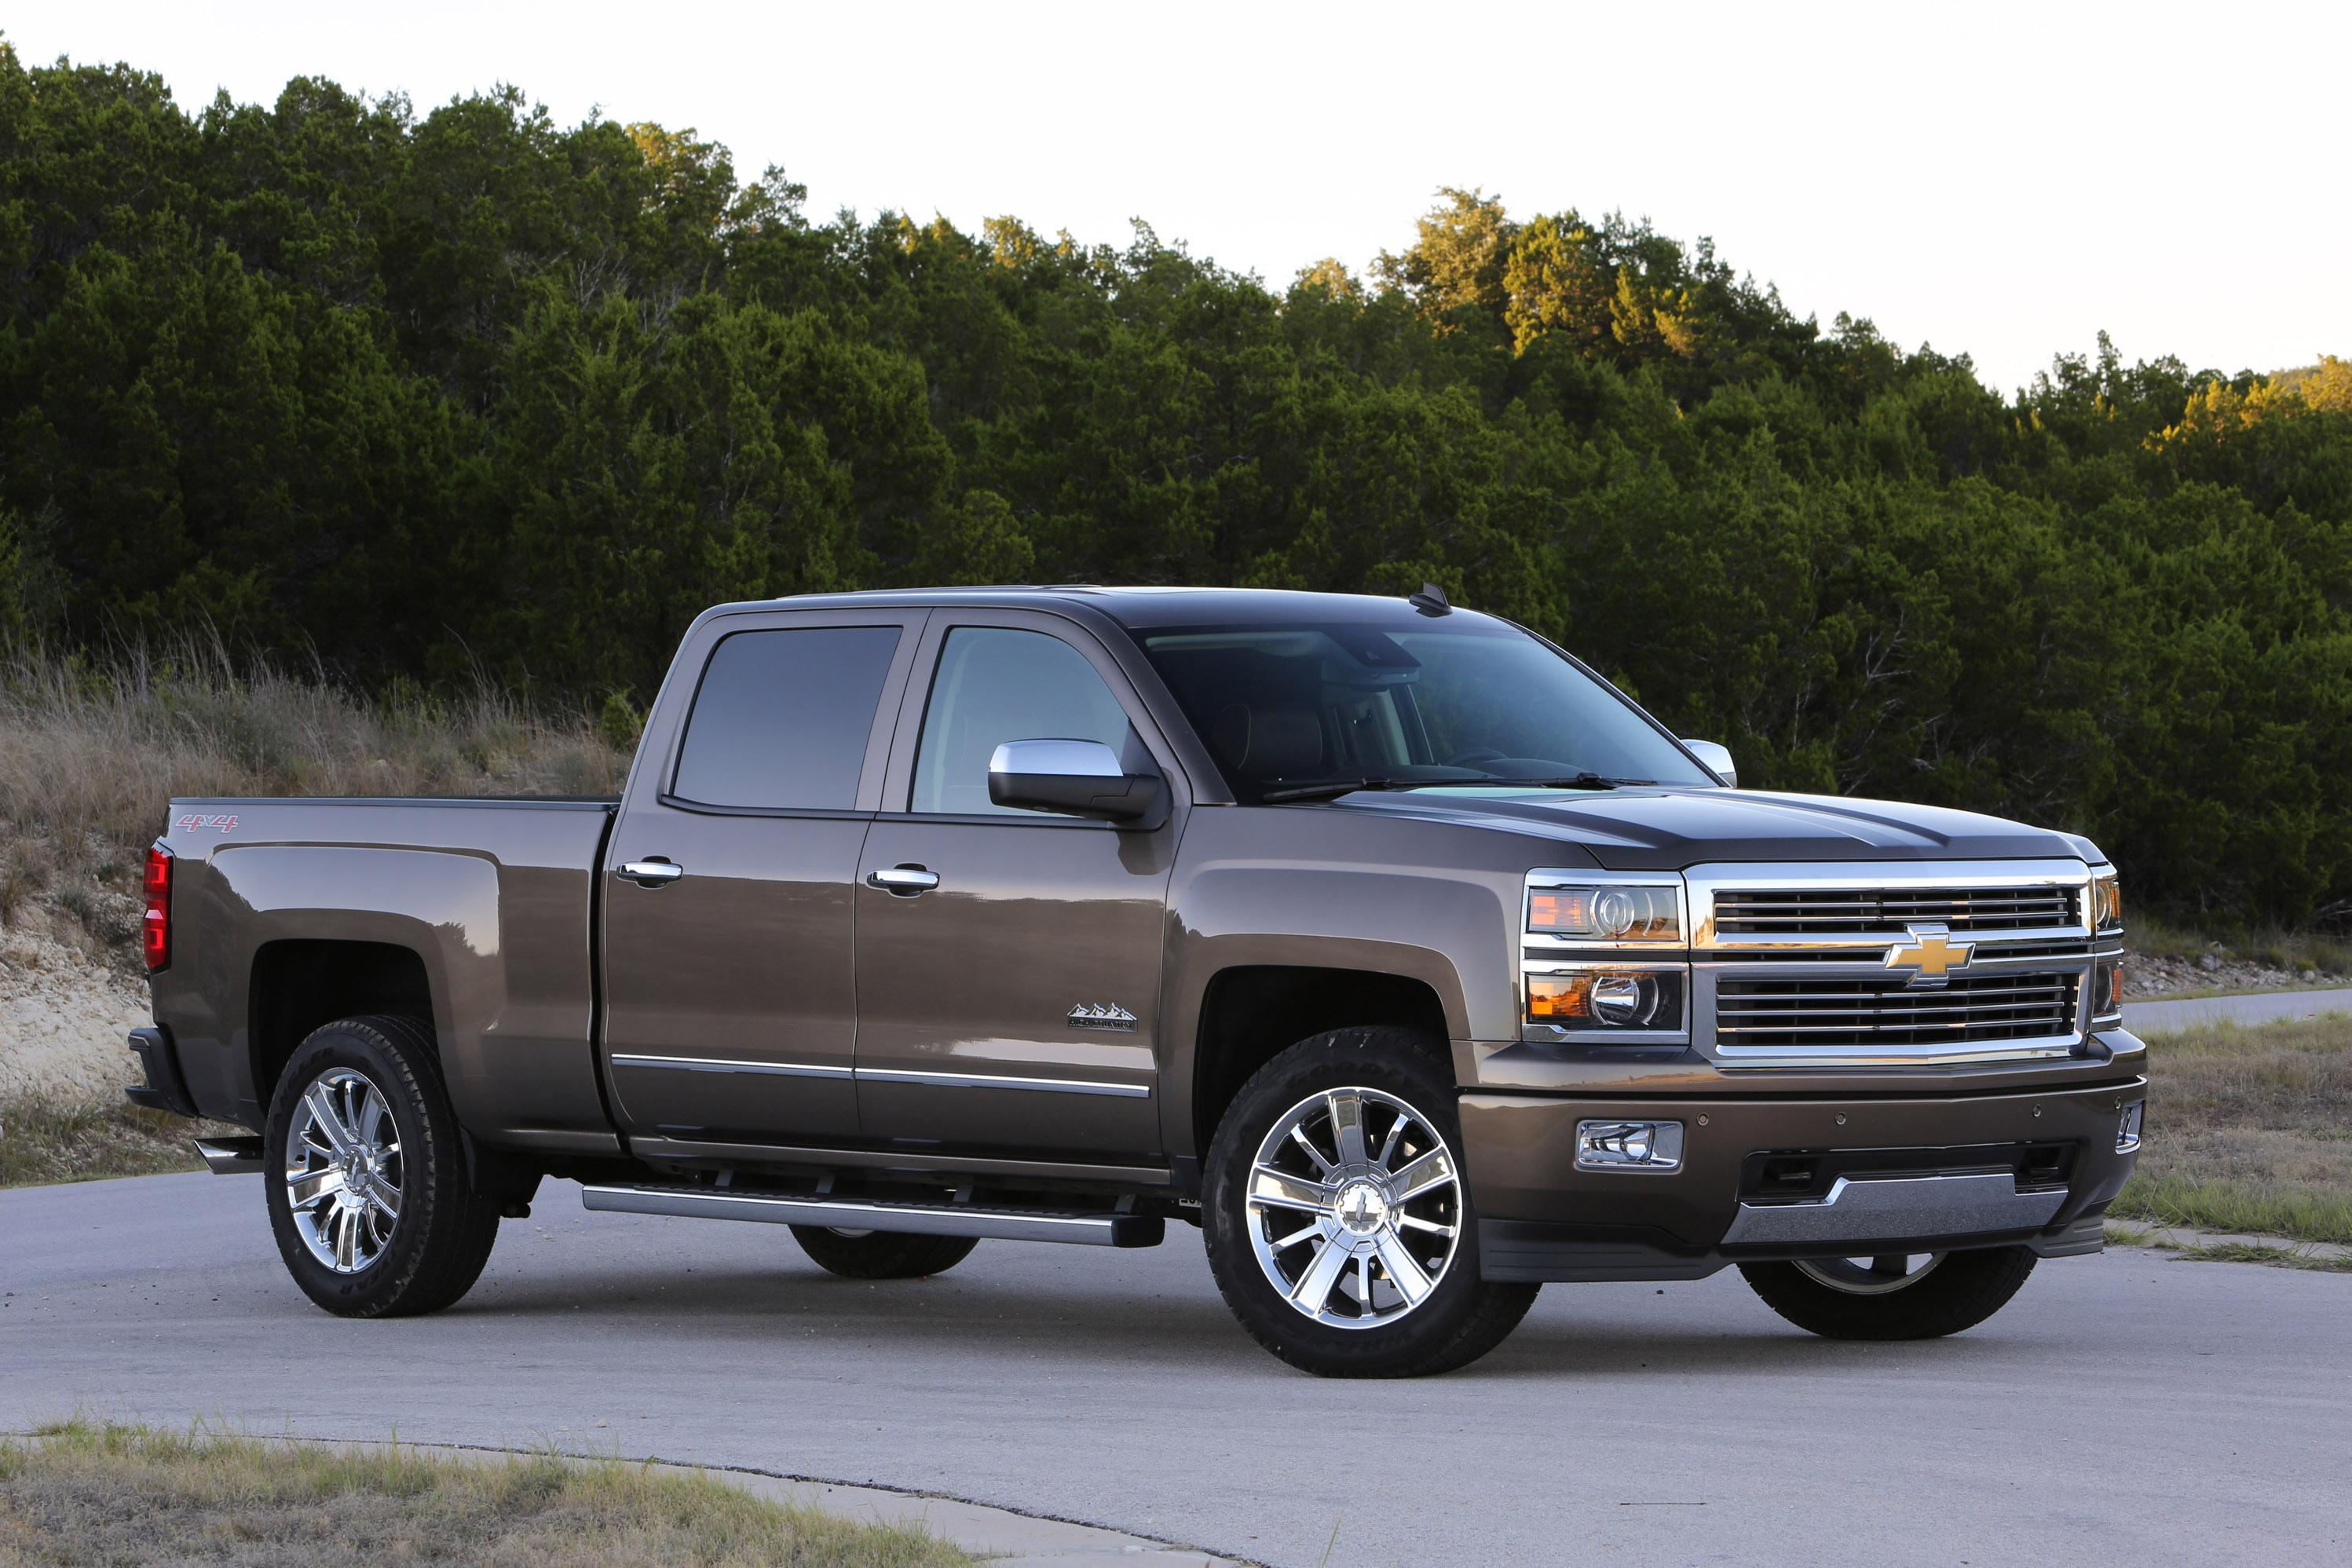 GM to recall 7m vehicles worldwide over air bag concerns